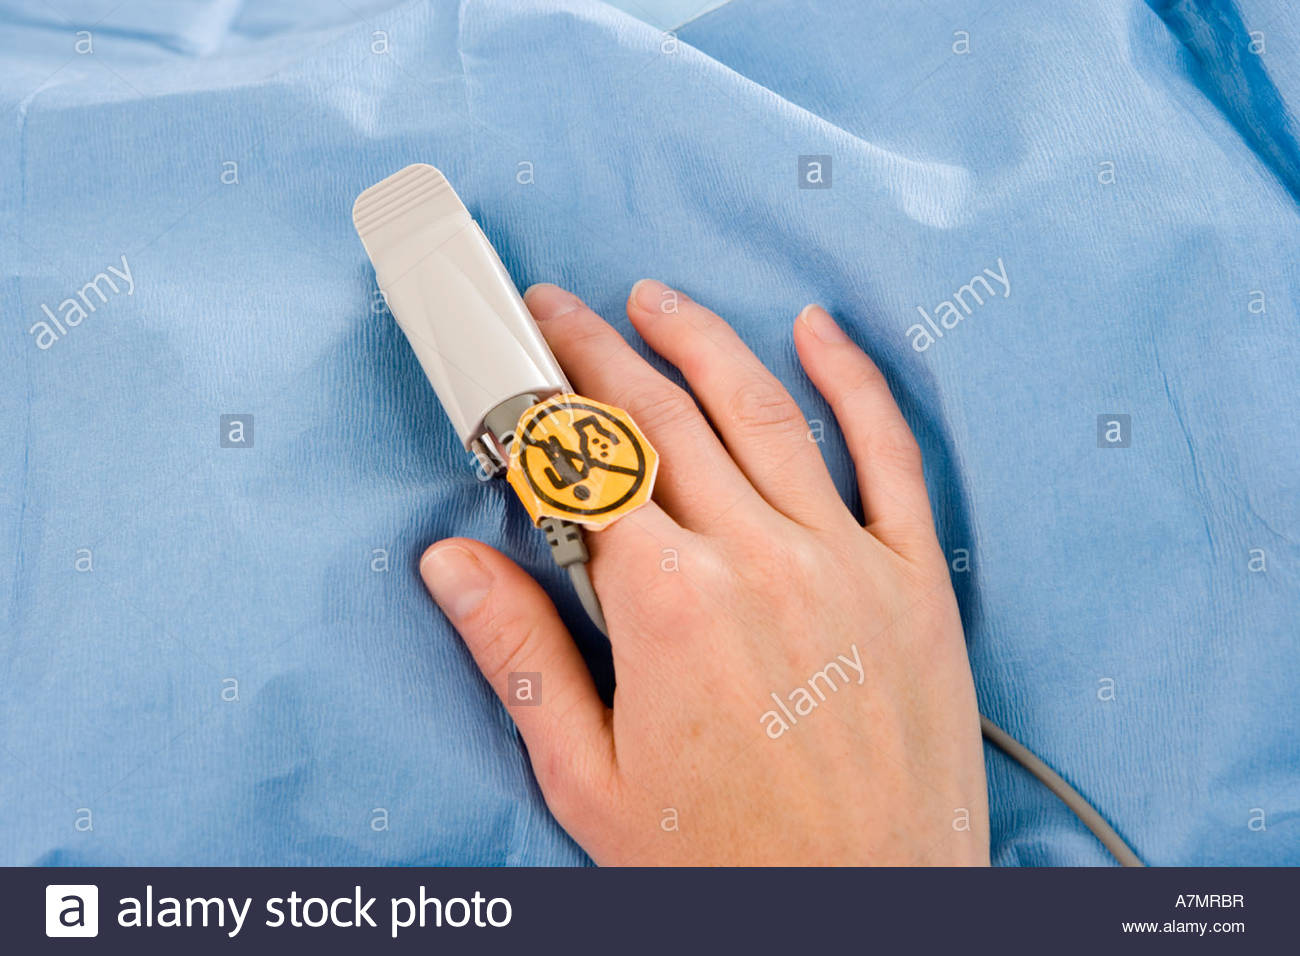 Patient wearing pulse oxymeter on finger close up overhead view - Stock Image